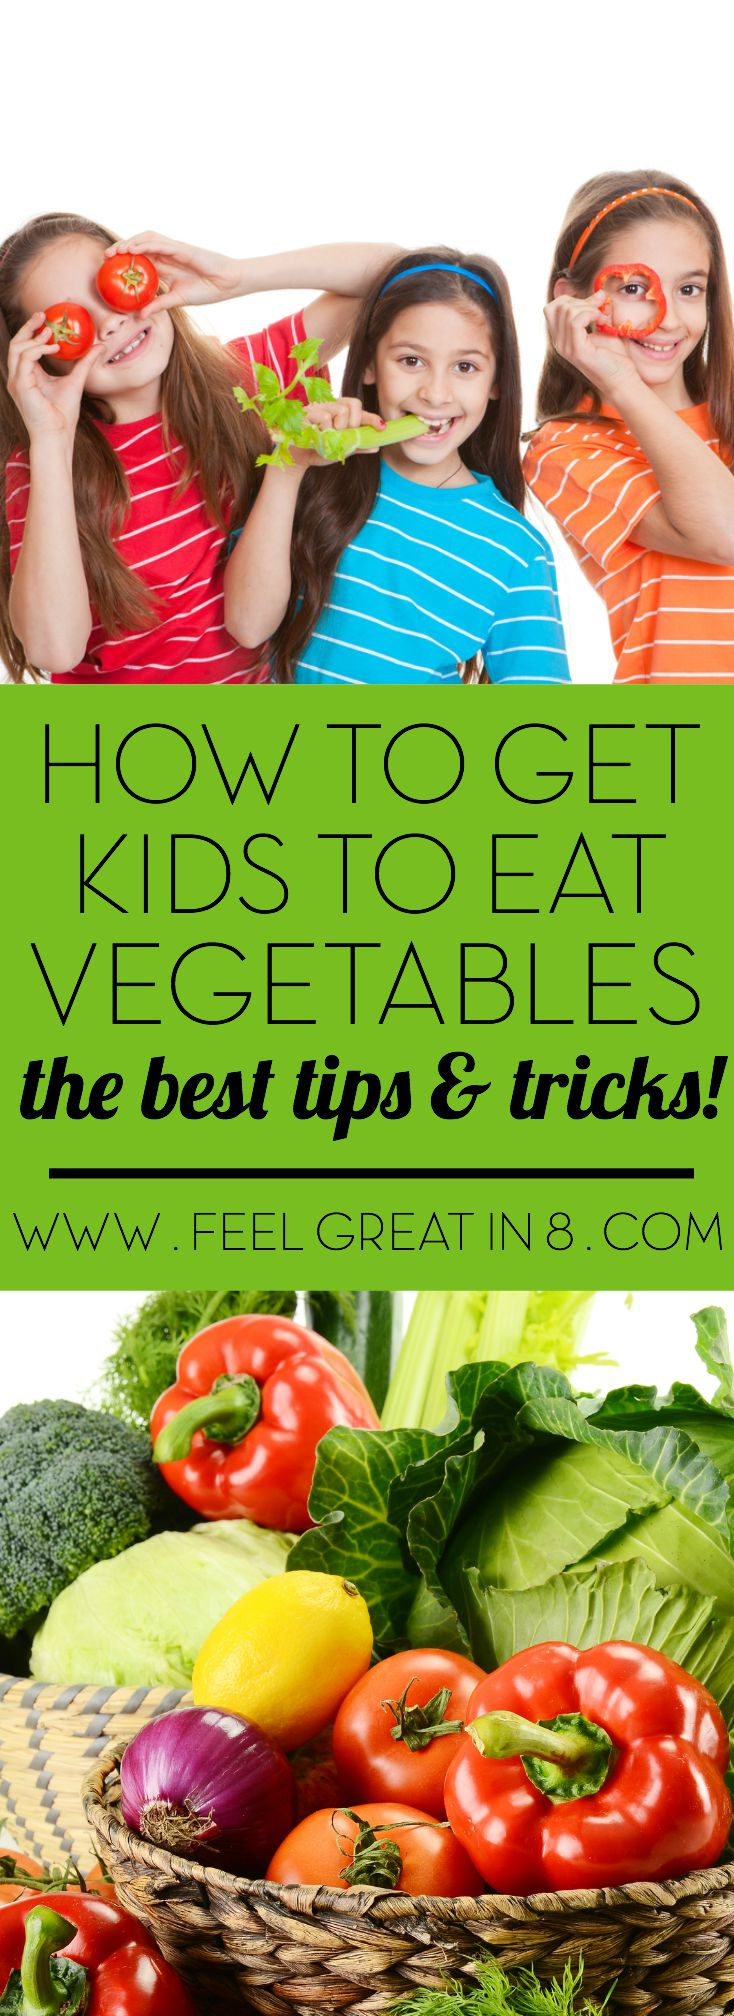 Wondering how to get kids to eat vegetables without begging, fighting, or hiding them in cookies? Here are the very best, mom proven tips and tricks!